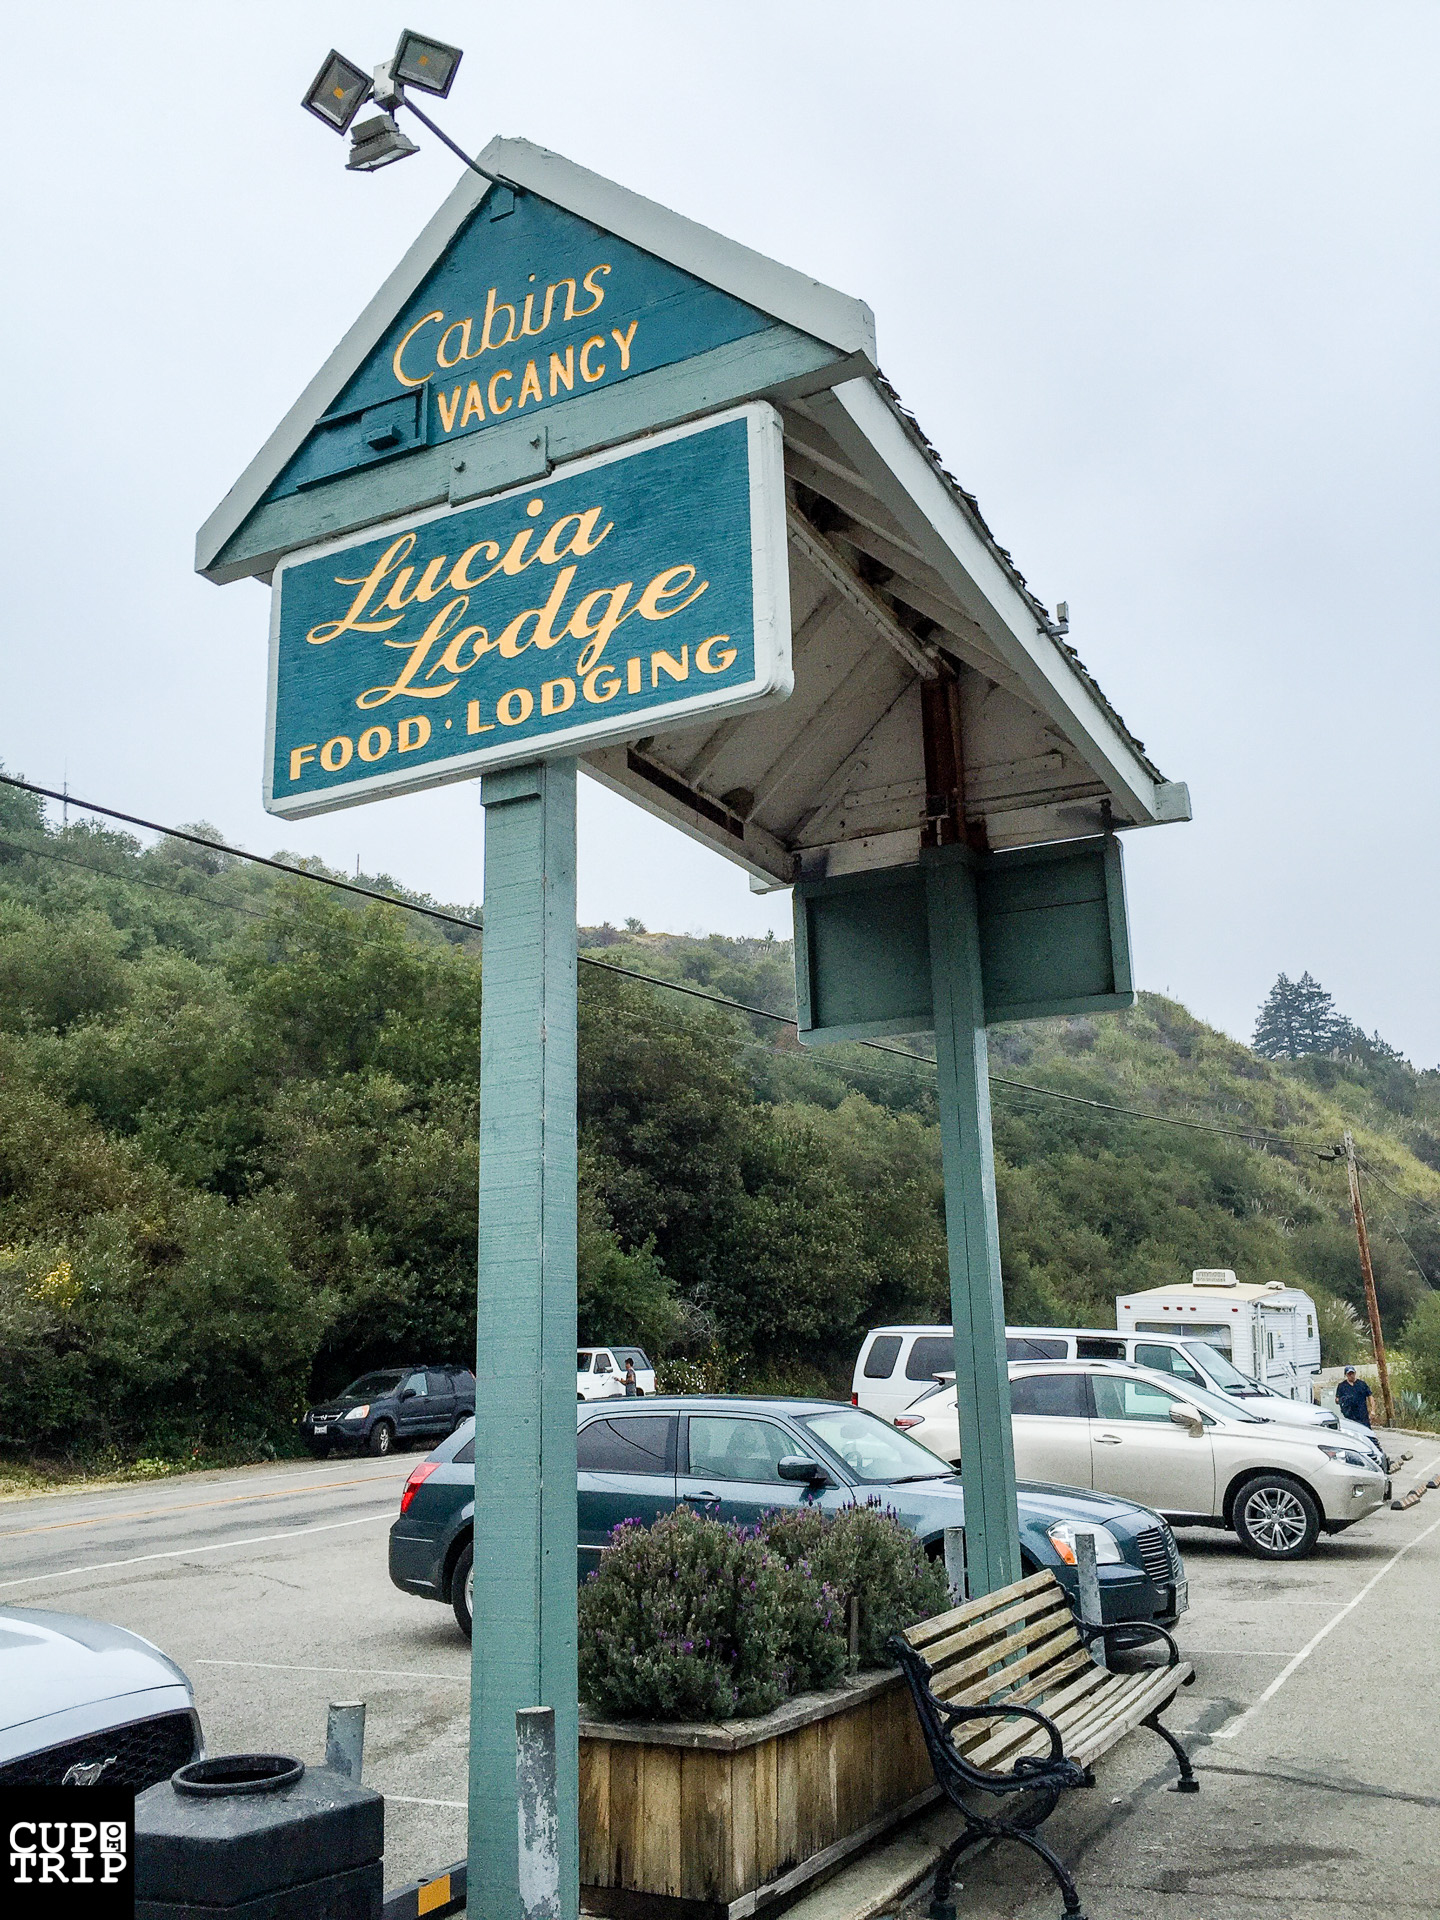 West Coast Road Trip | Day One: Passing Through Amazing Big Sur!